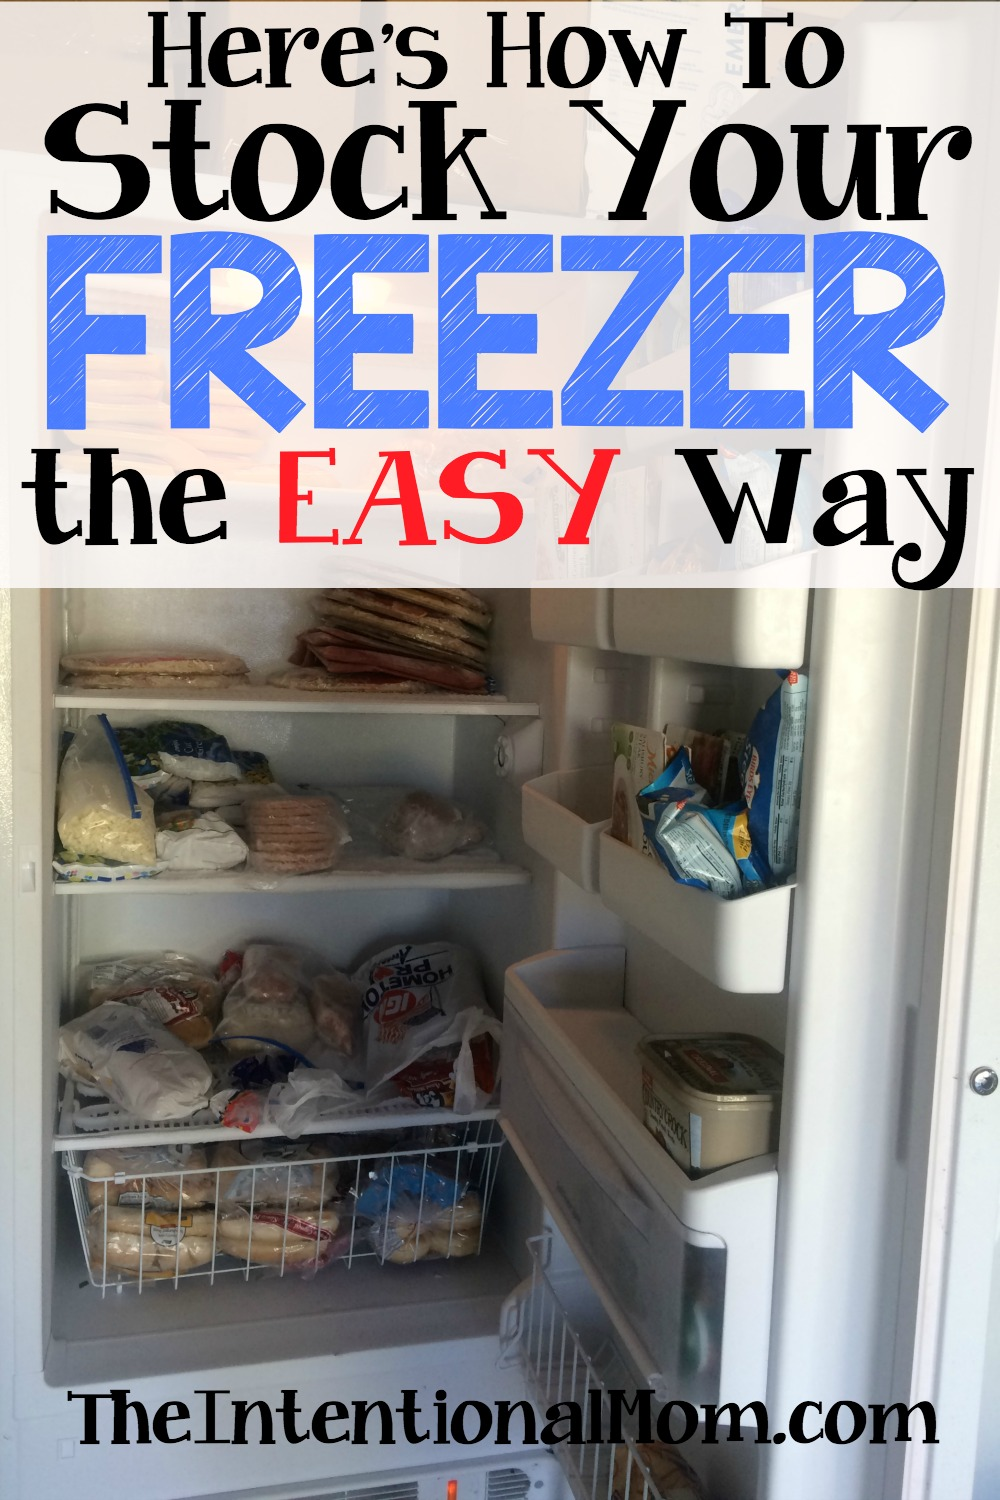 here's how to stock your freezer